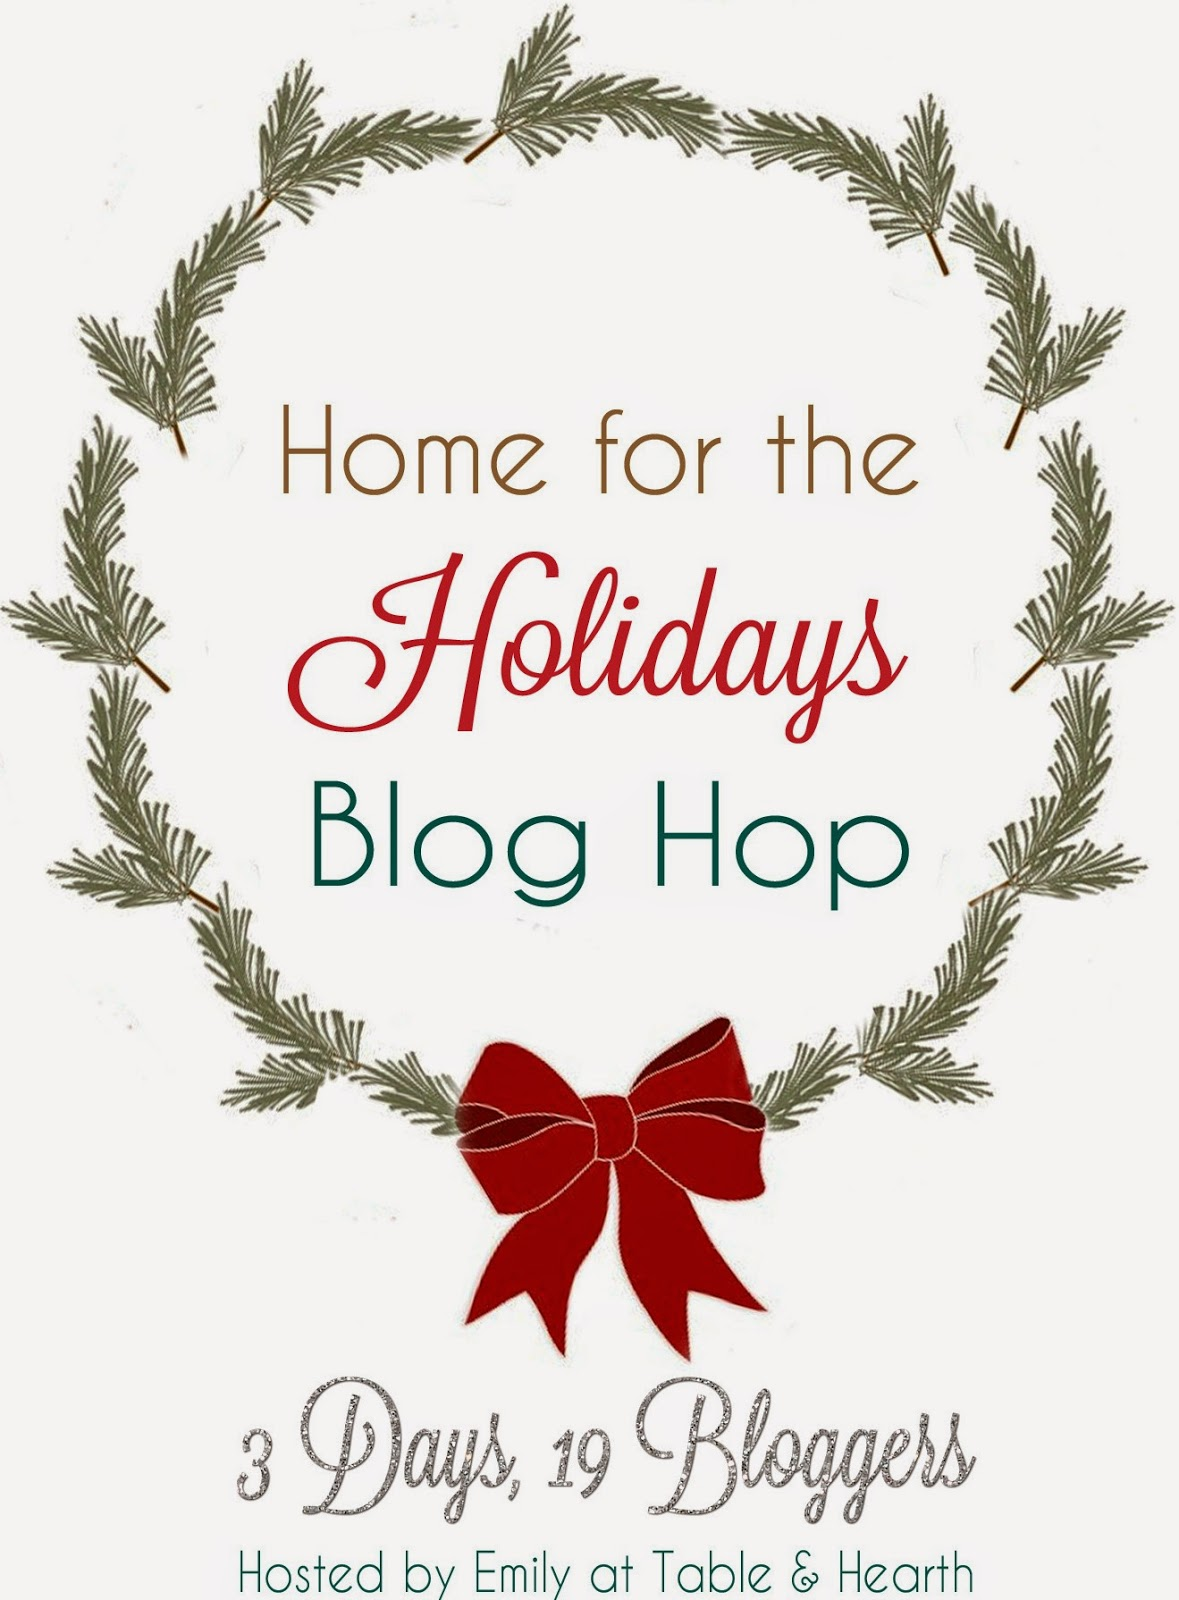 Decorating for Christmas while Under Construction  |  Home for the Holidays Blog Hop  |  Mrs. Fancee